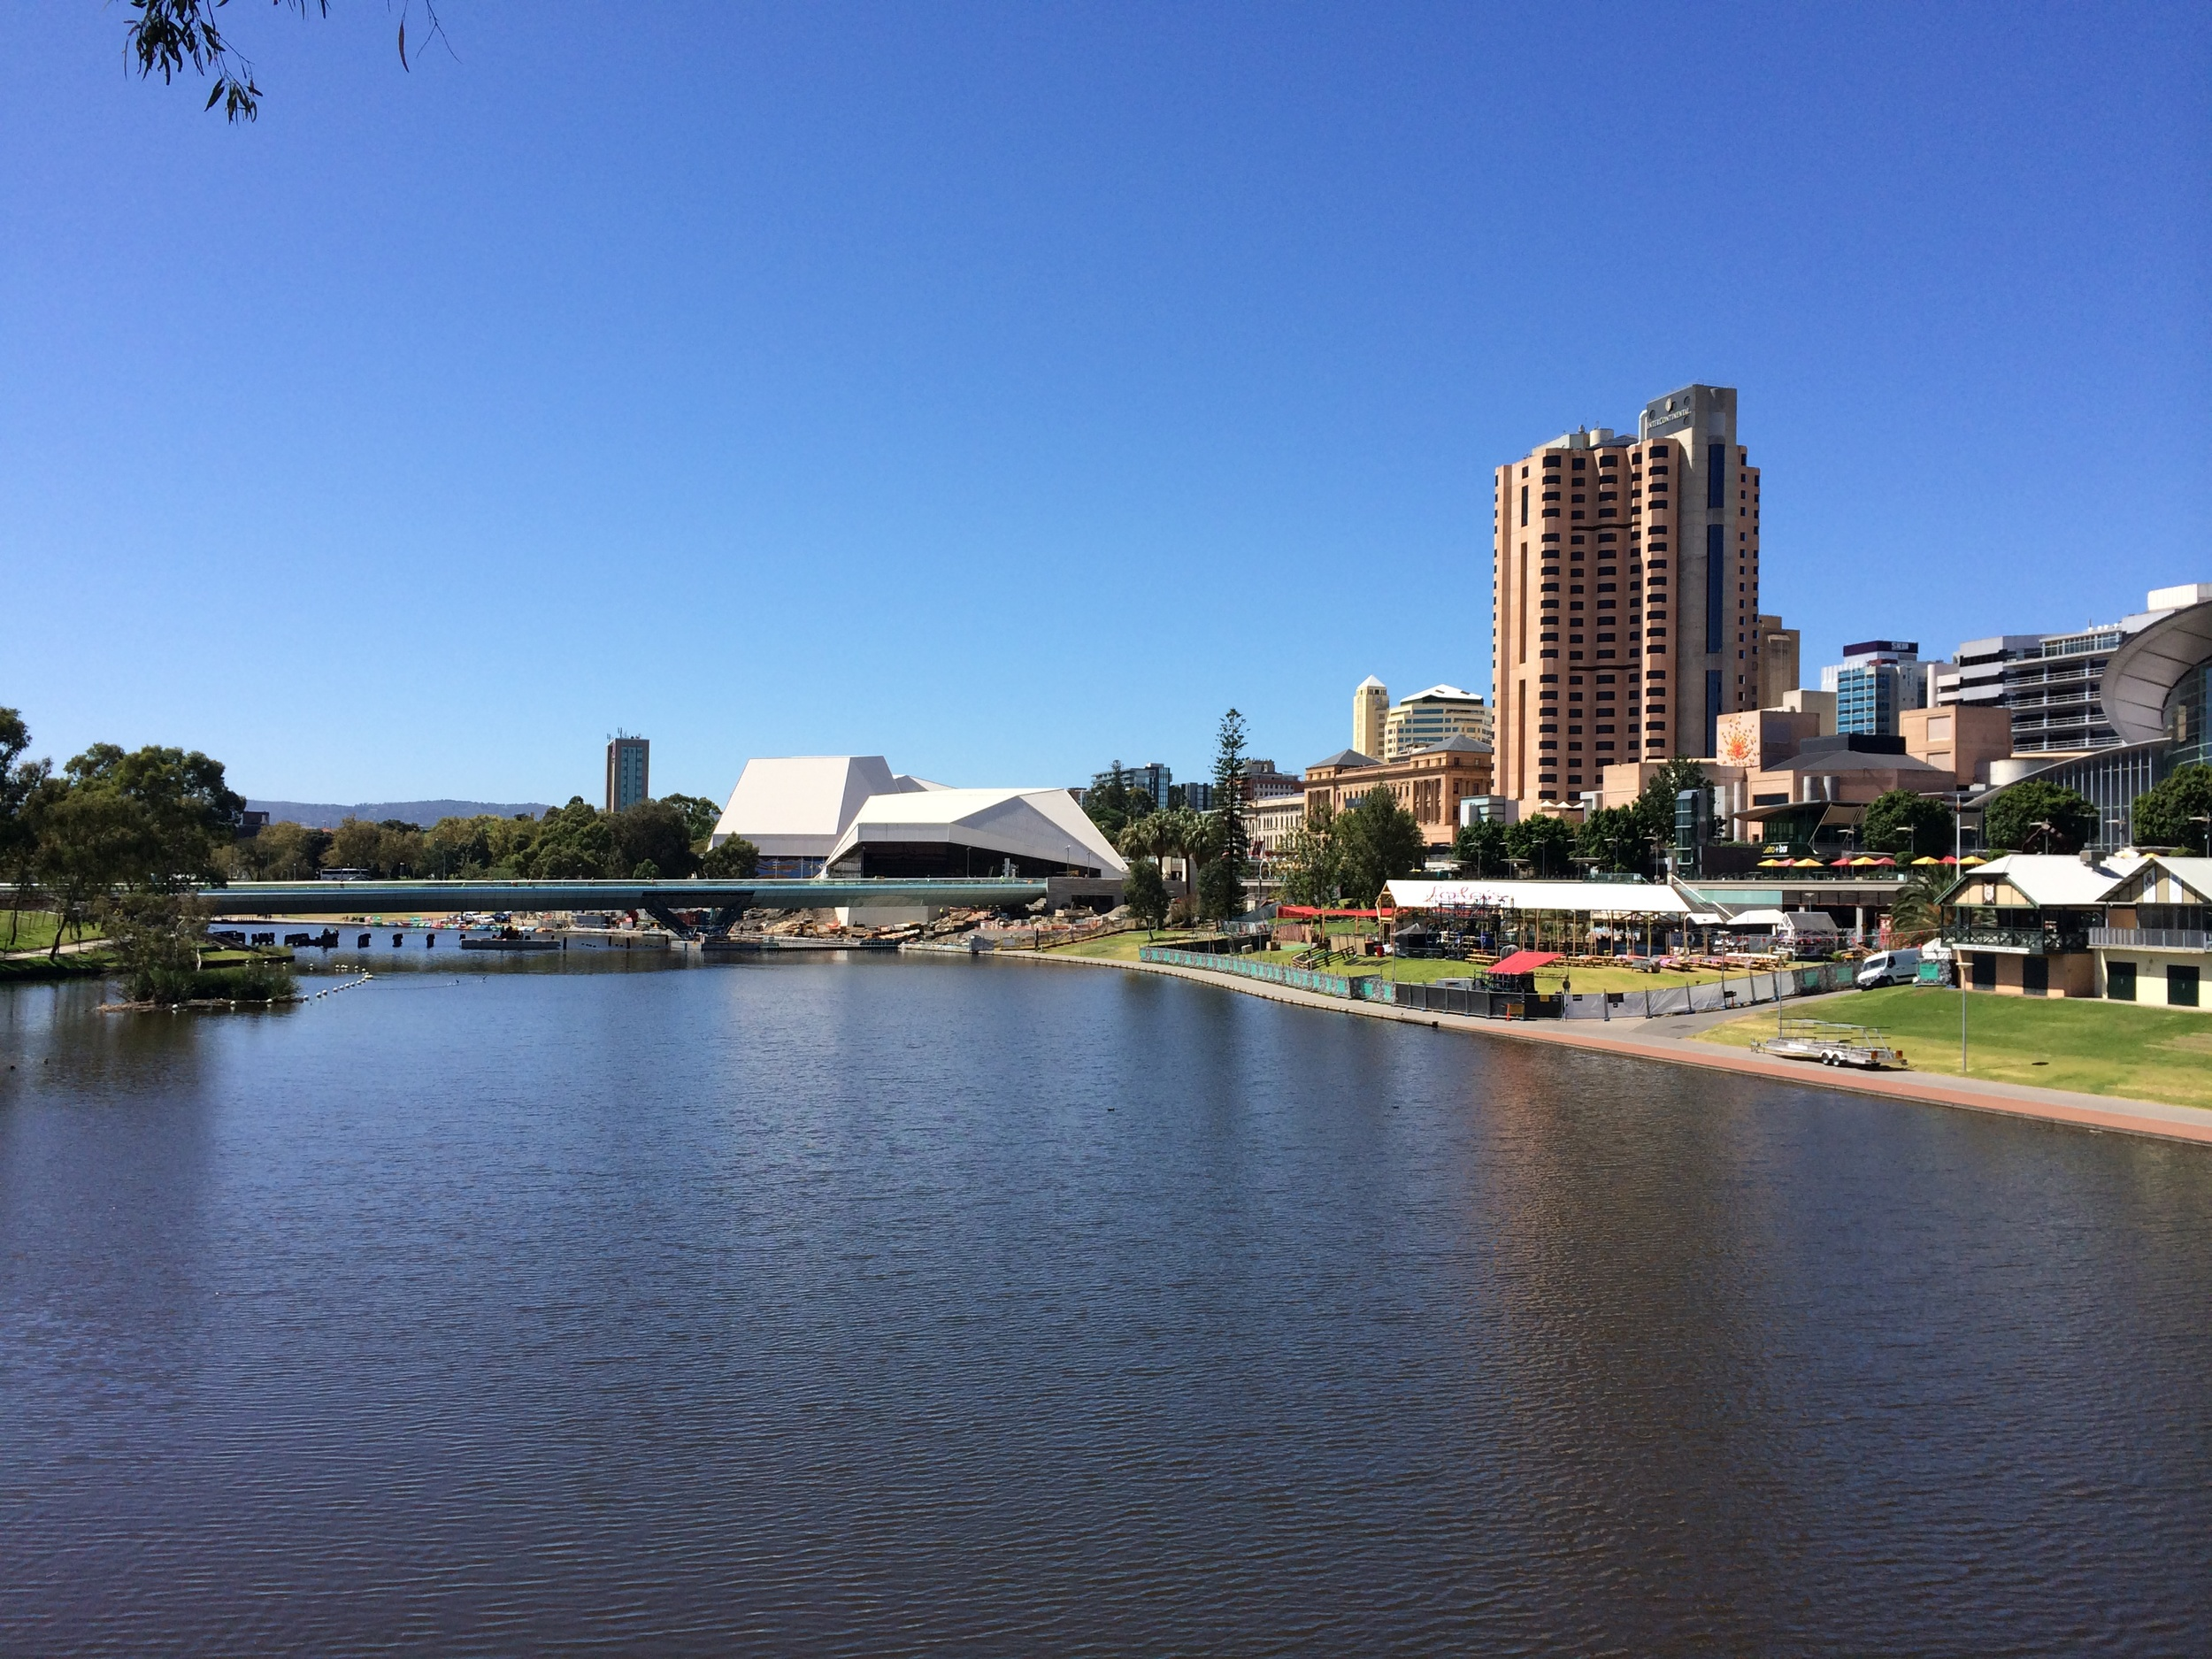 Looking good Radelaide.